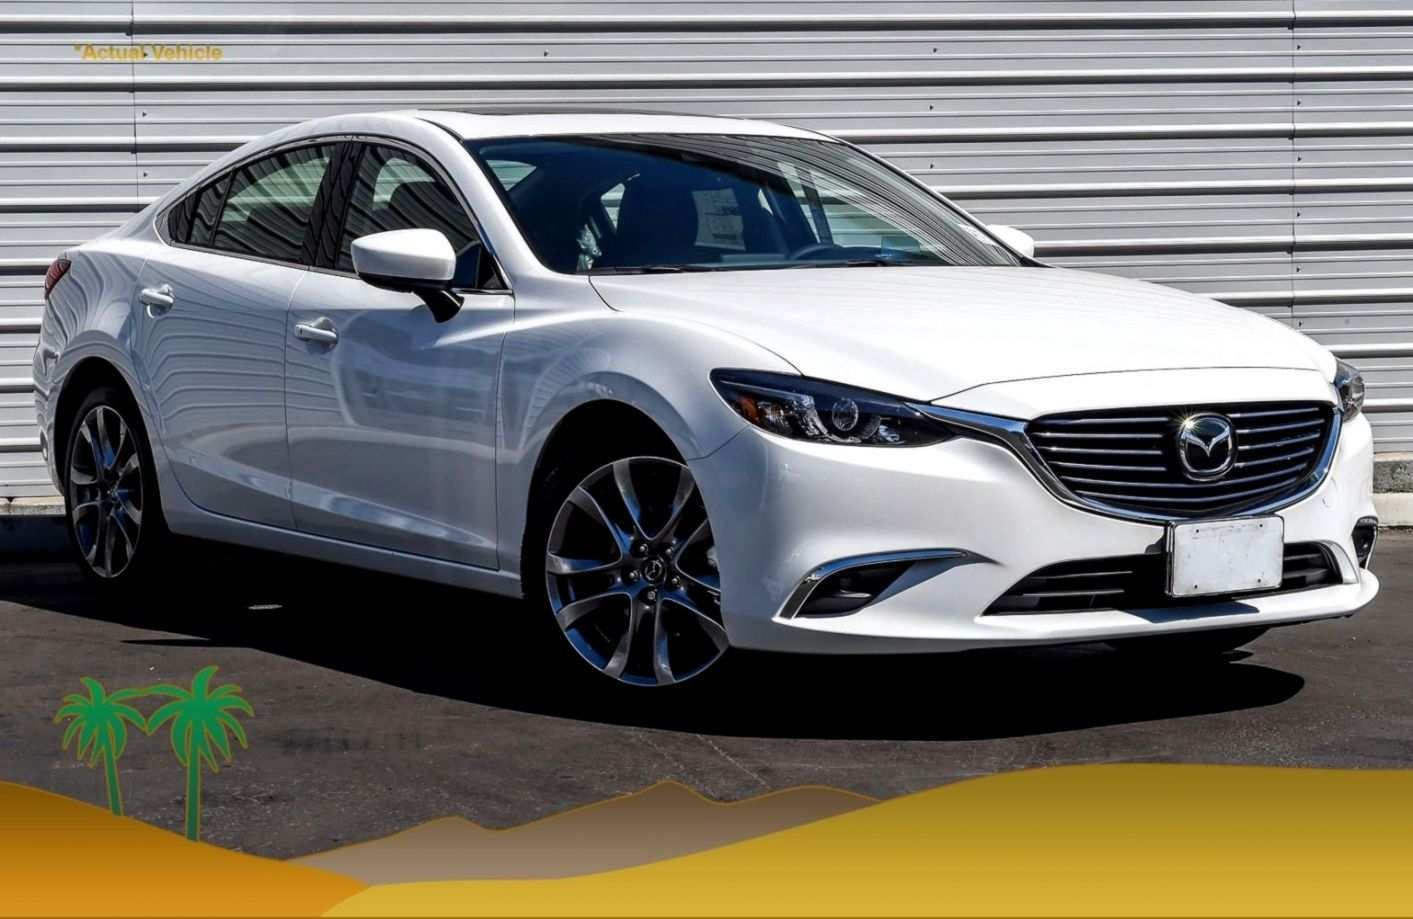 41 All New Mazda 6 2019 White New Review with Mazda 6 2019 White